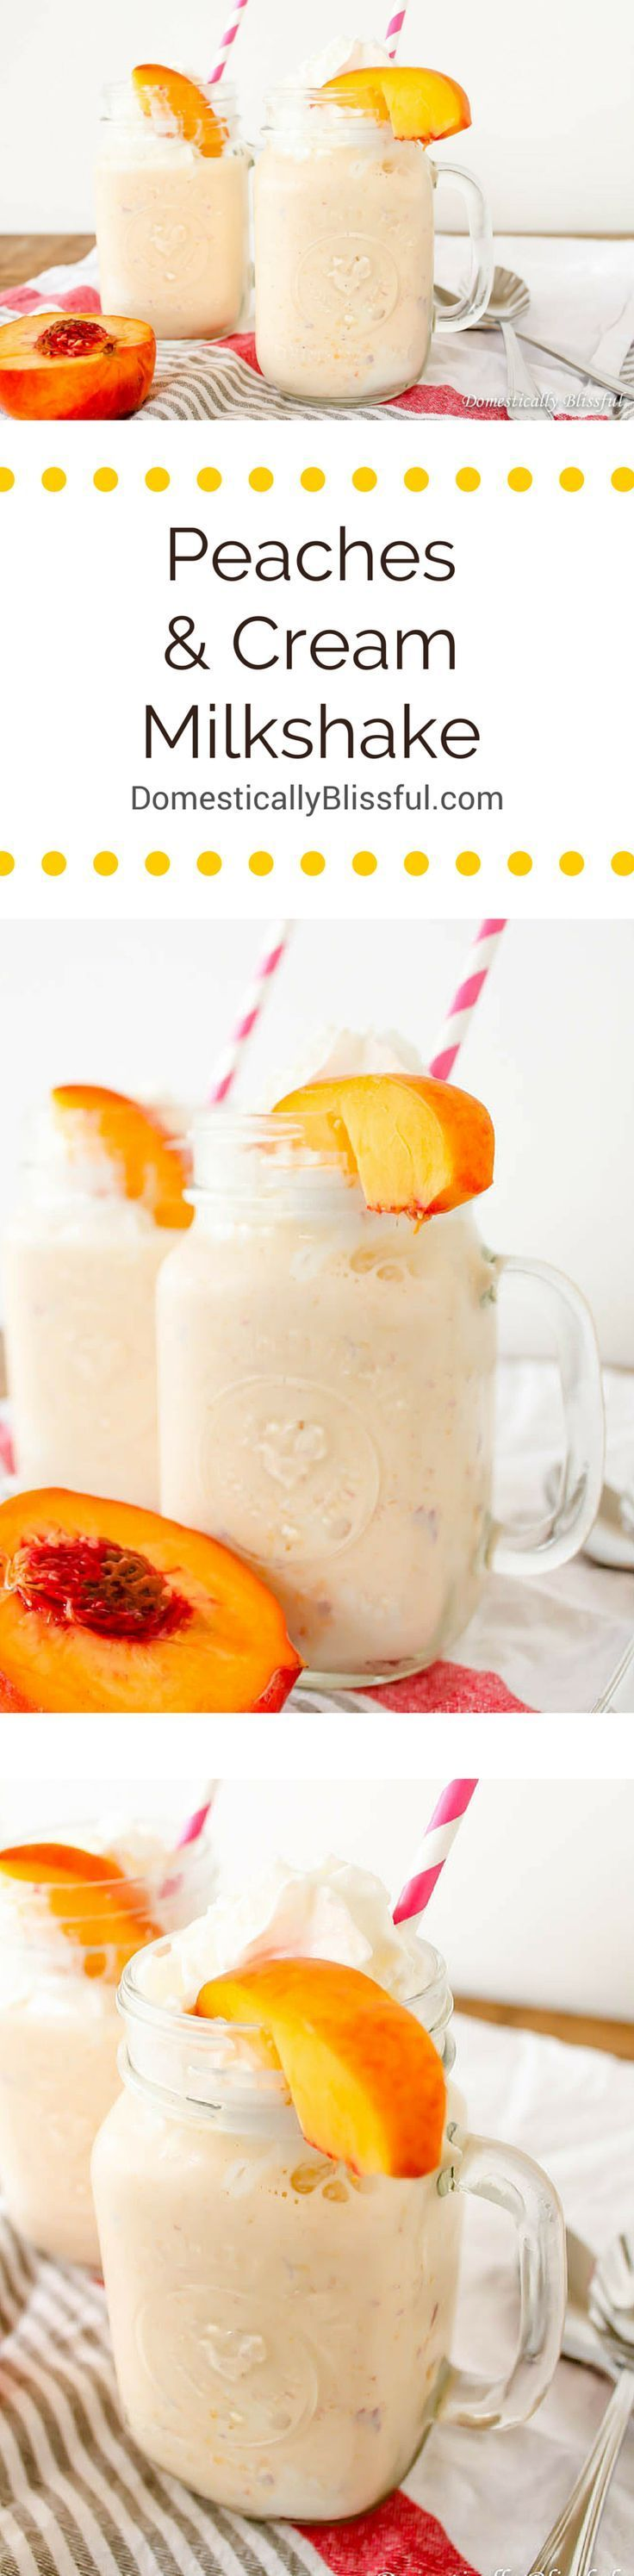 This Peaches and Cream Milkshake is perfectly creamy & sweetened with the tastiest of fresh peach flavor!